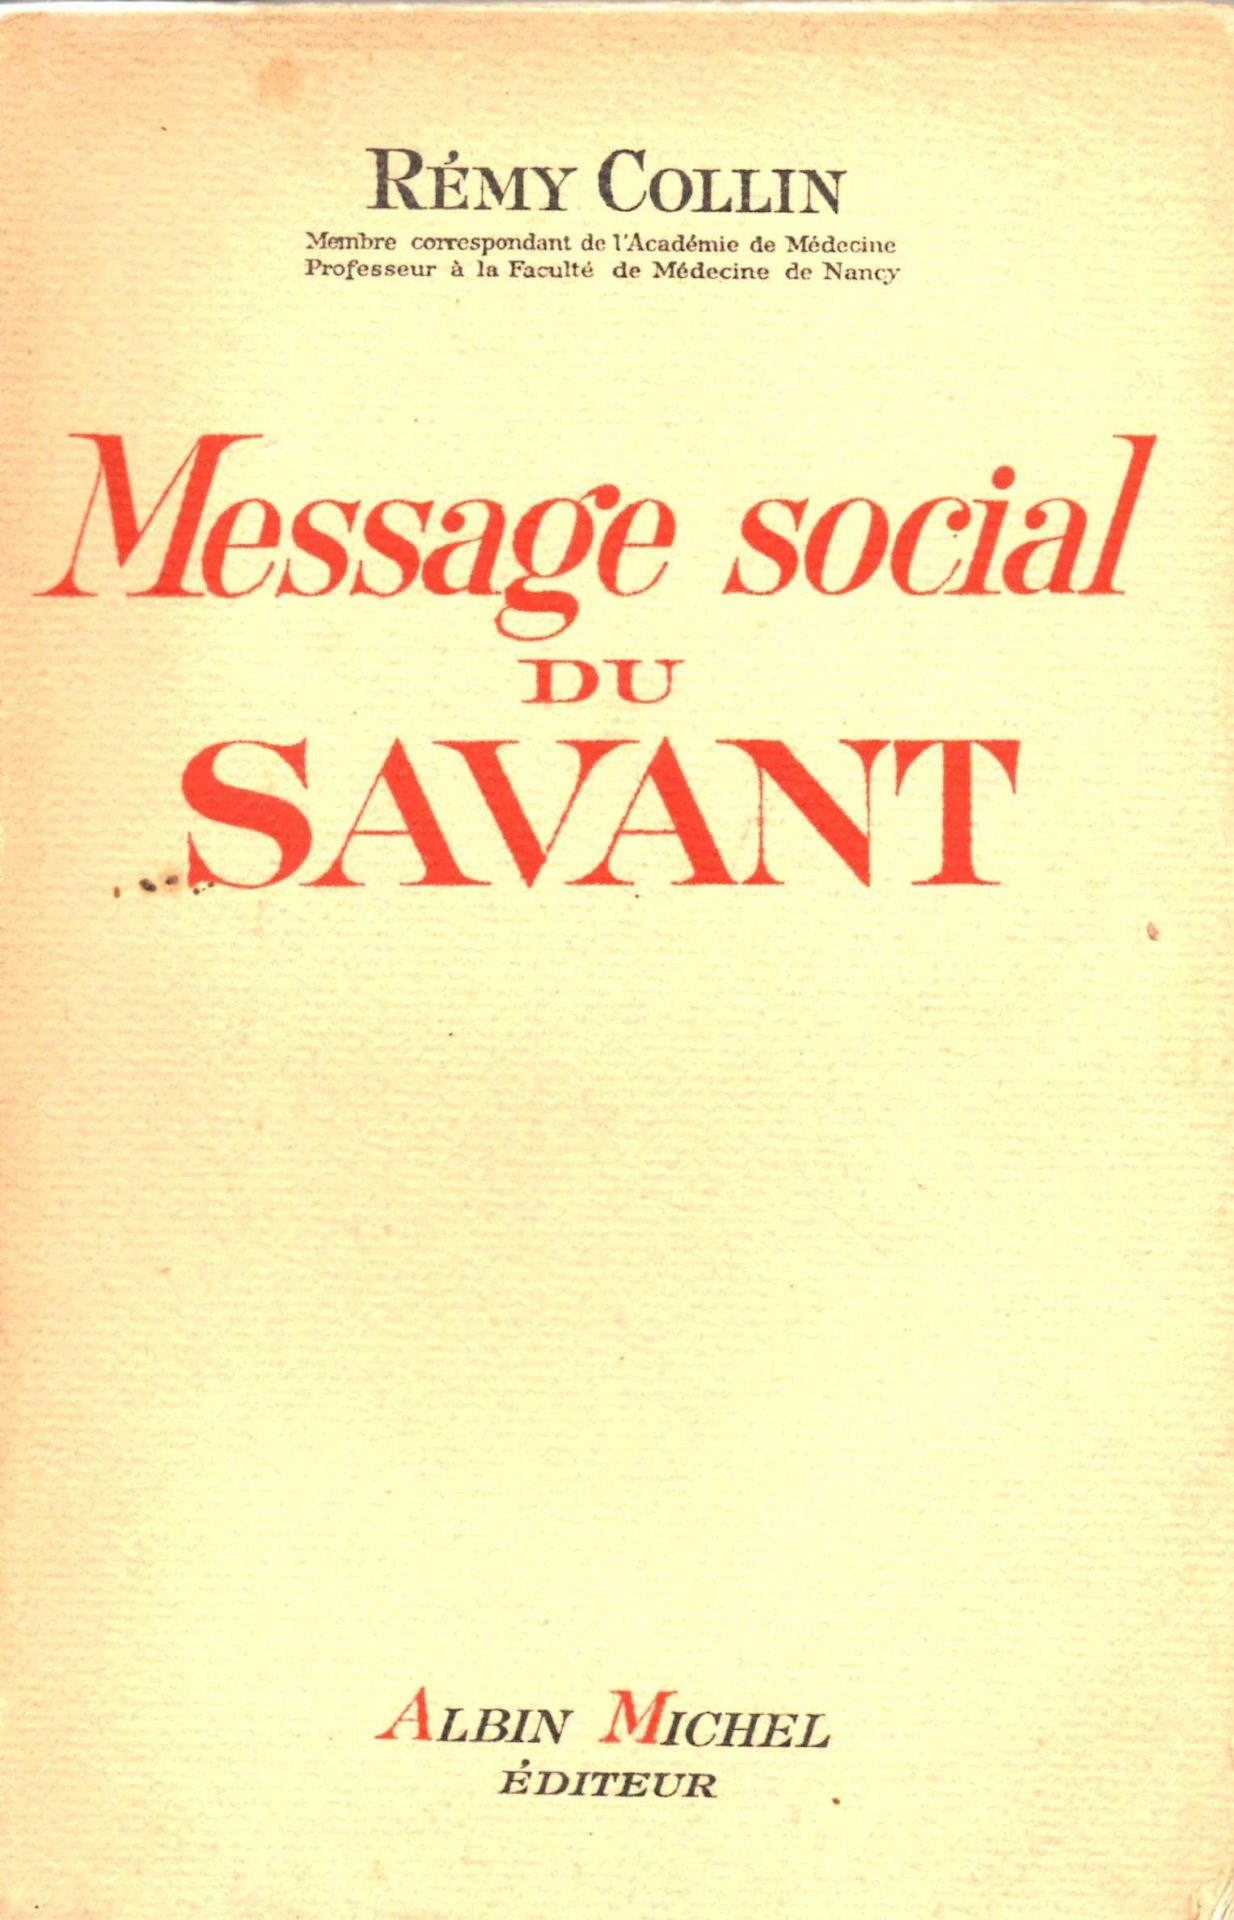 Message social du savant, Rémy Collin (Albin Michel).